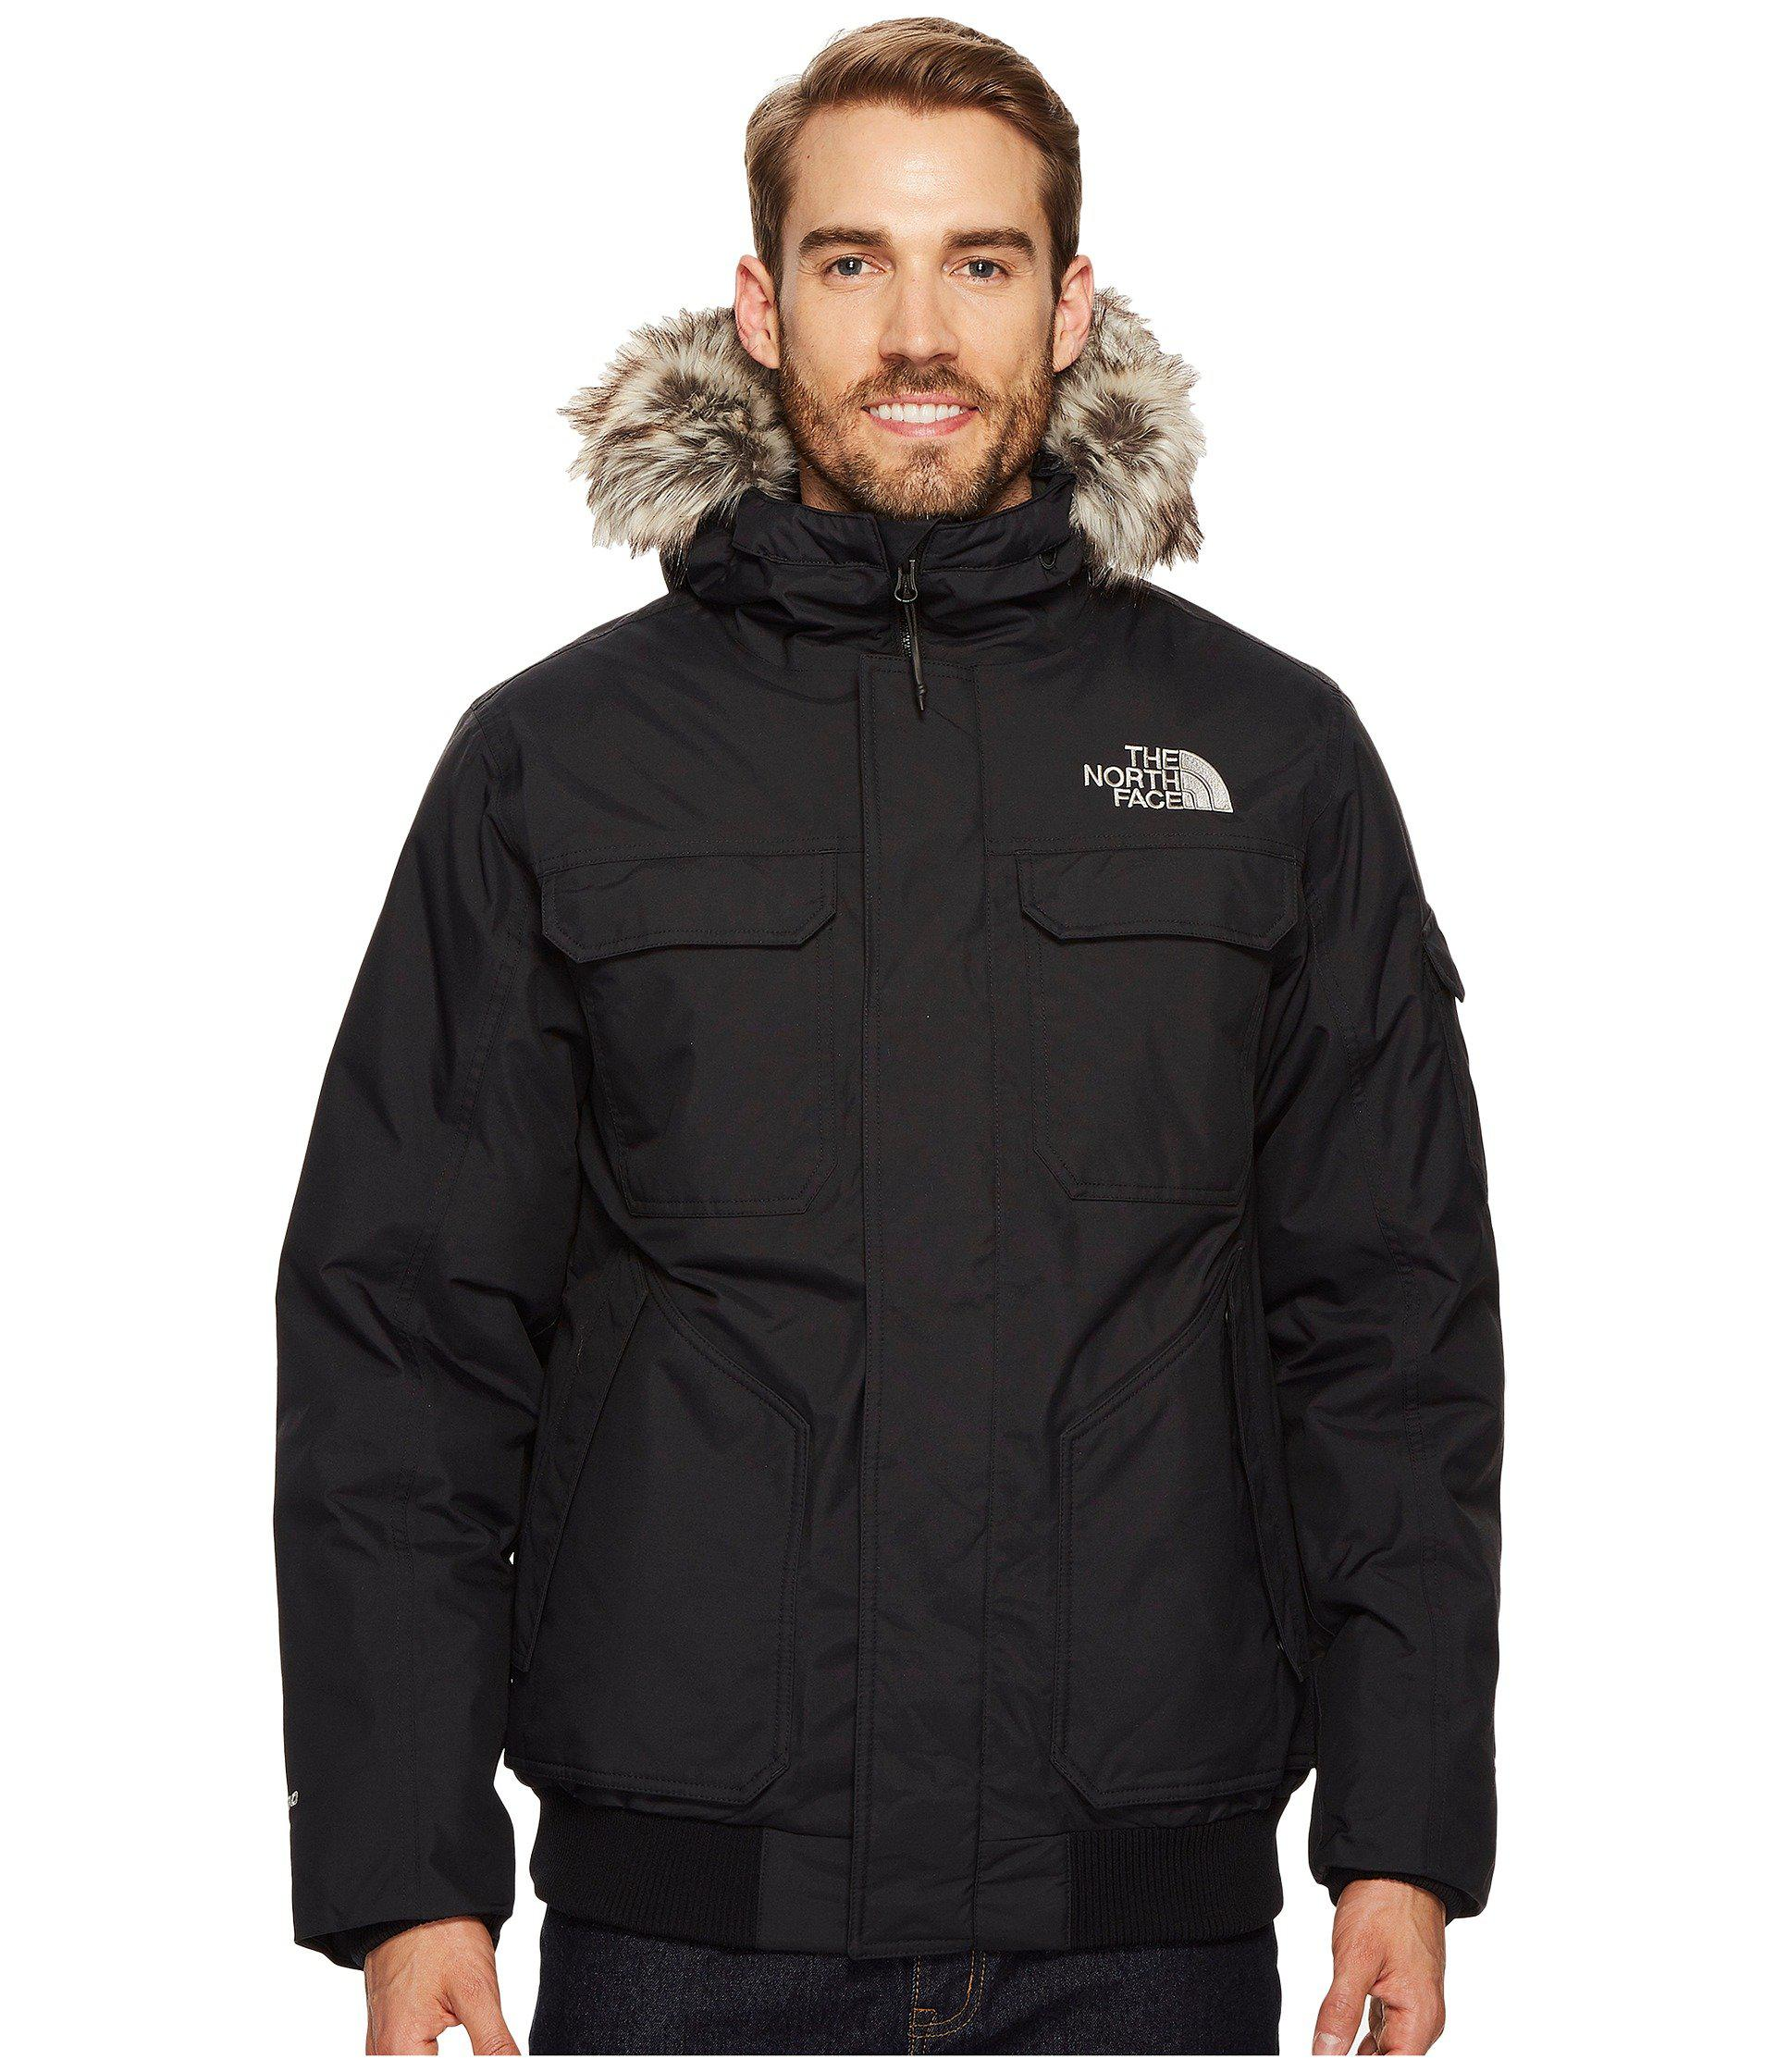 c6939e26c6f6d ... coupon for the north face. black gotham jacket 54750 1a136 ...